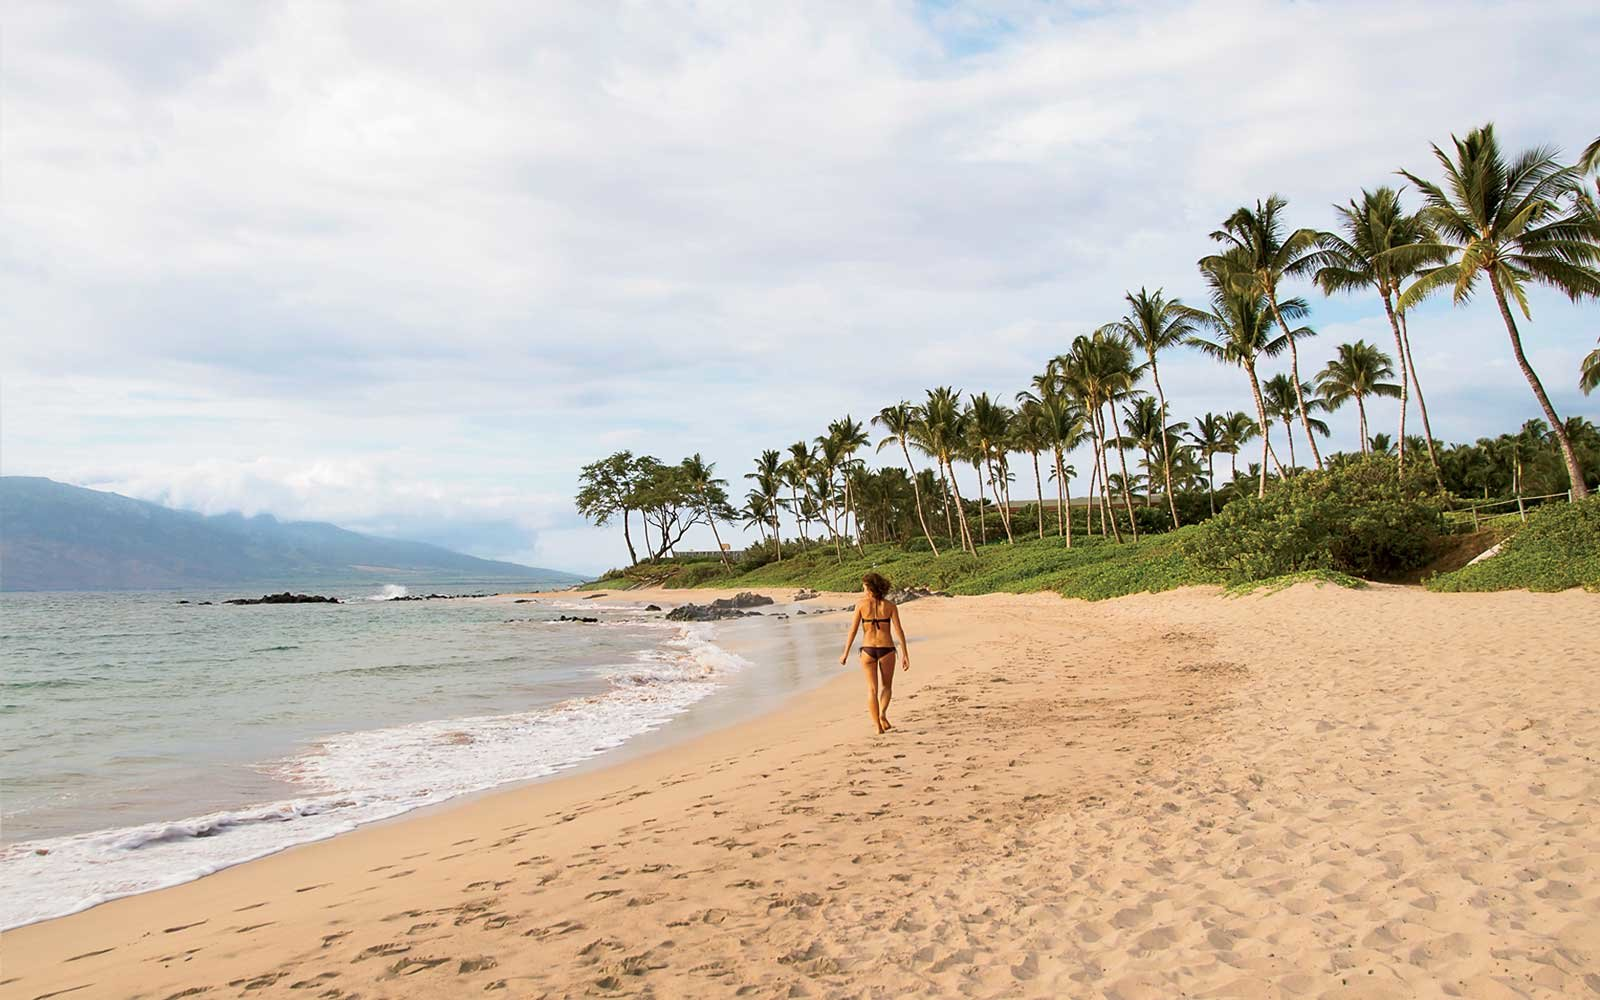 Woman on Mokapu Beach in Maui, Hawaii